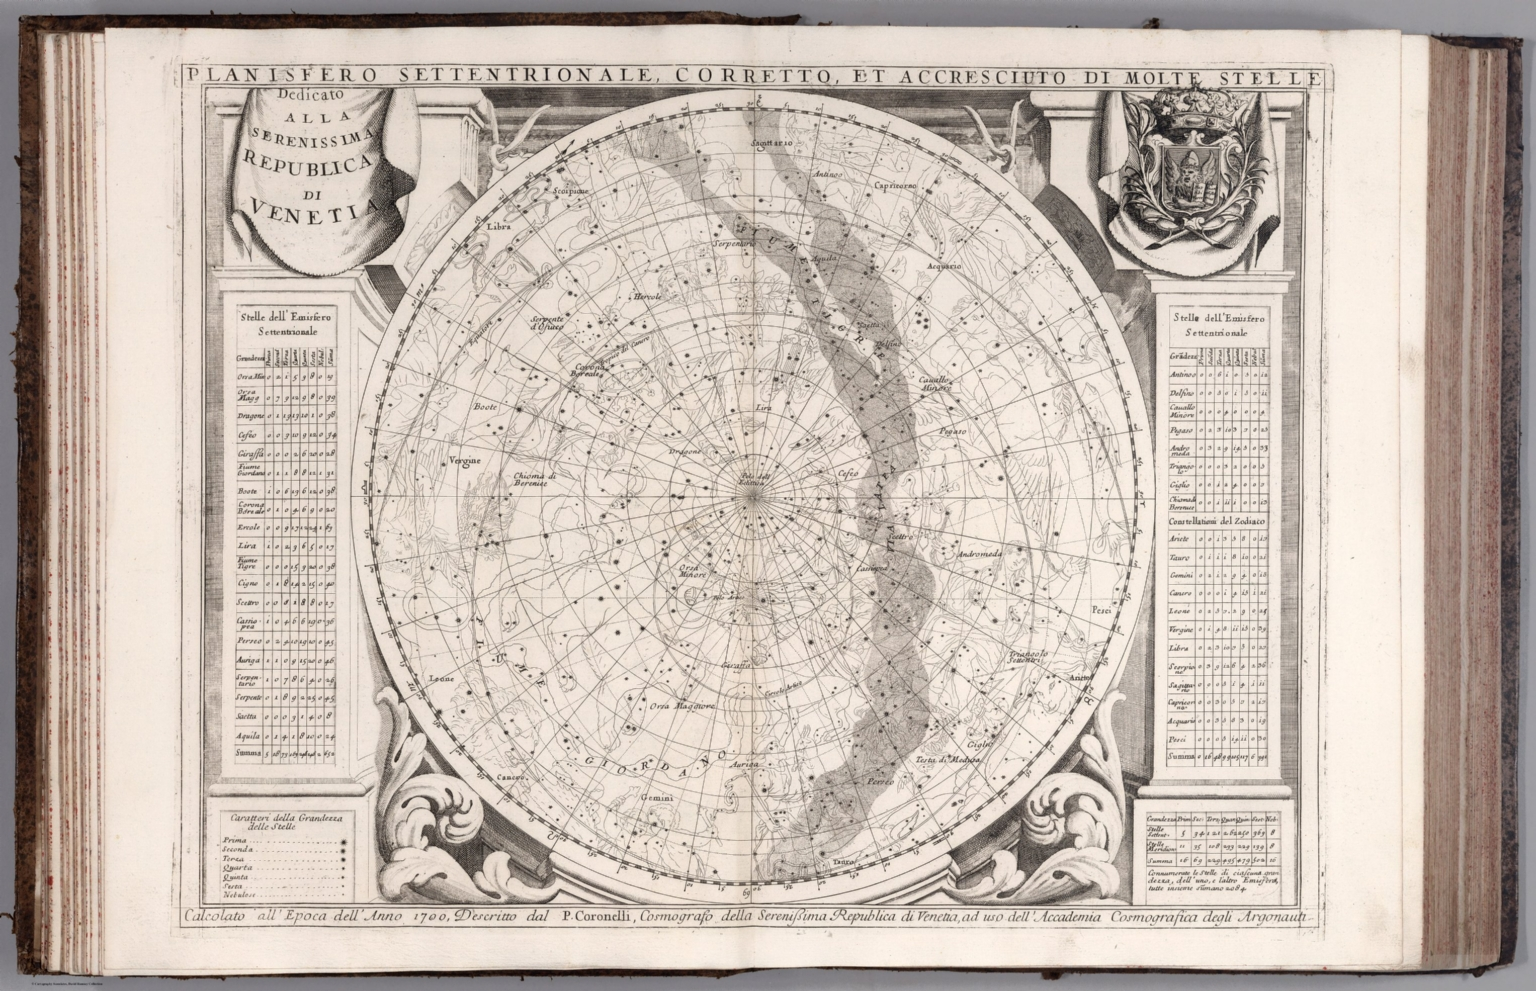 Planisfero Settentrionale David Rumsey Historical Map Collection